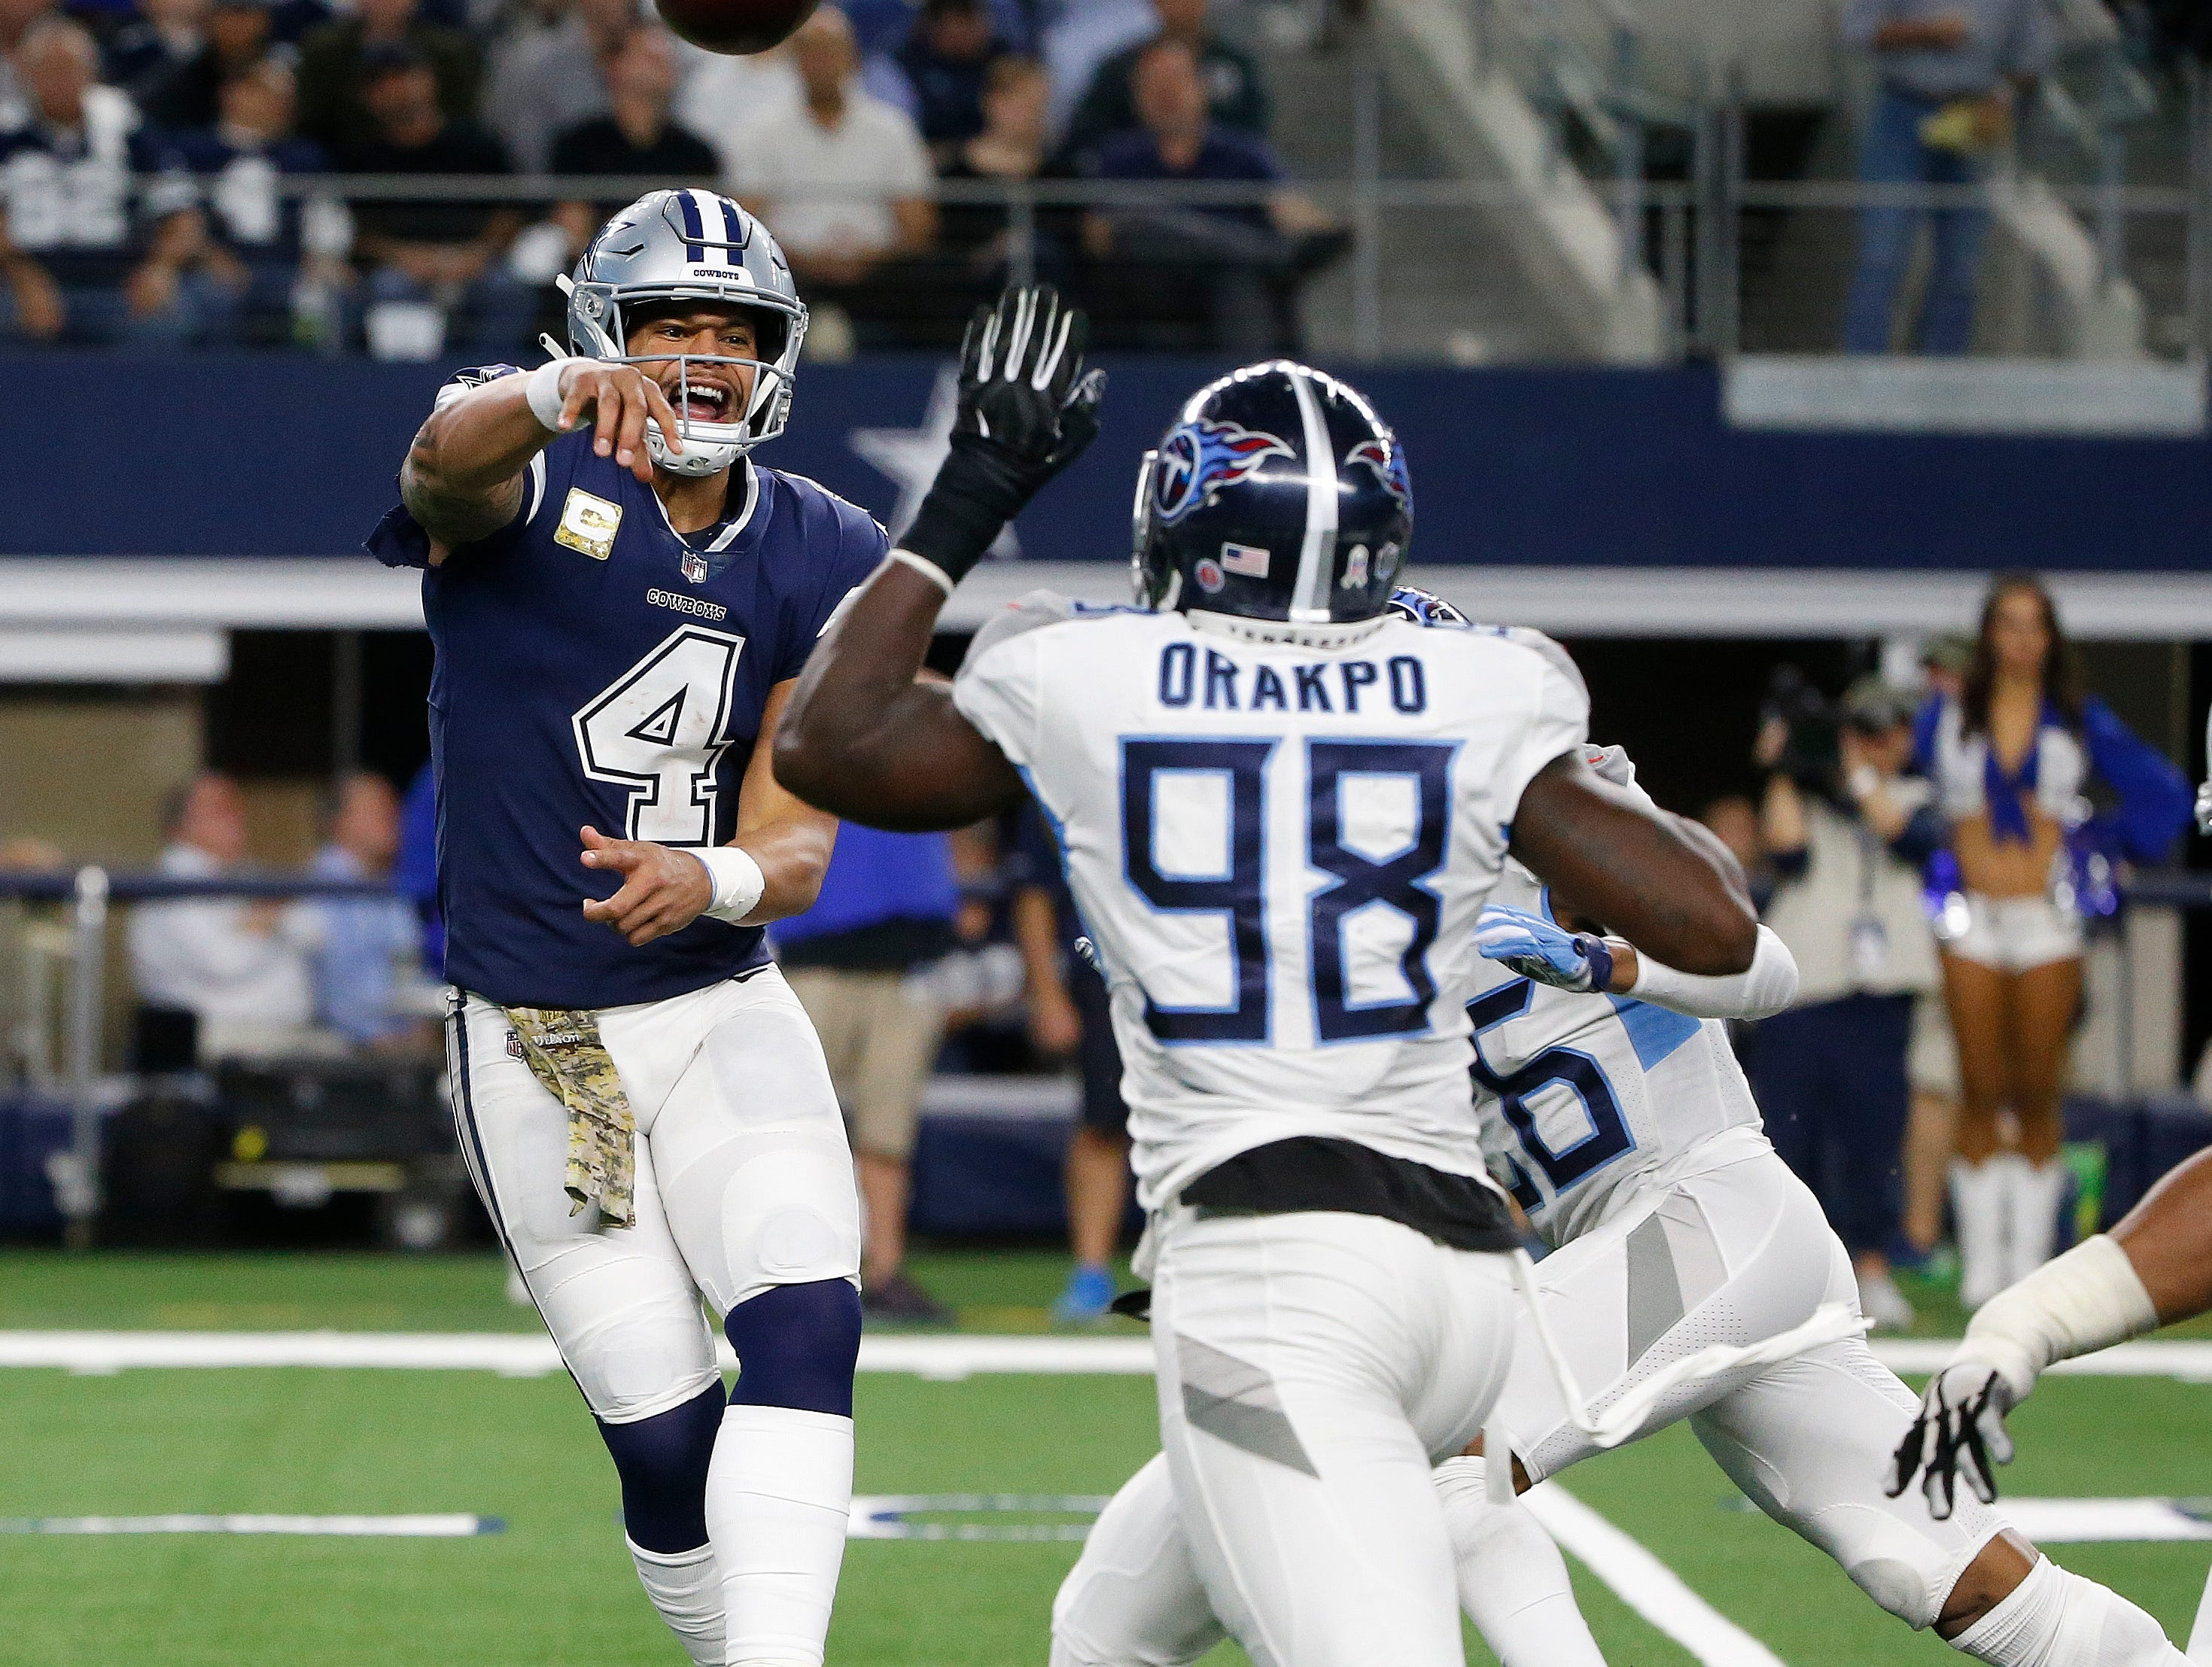 Dallas Cowboys quarterback Dak Prescott (4) works against the Tennessee Titans during the second half of an NFL football game, Monday, Nov. 5, 2018, in Arlington, Texas.